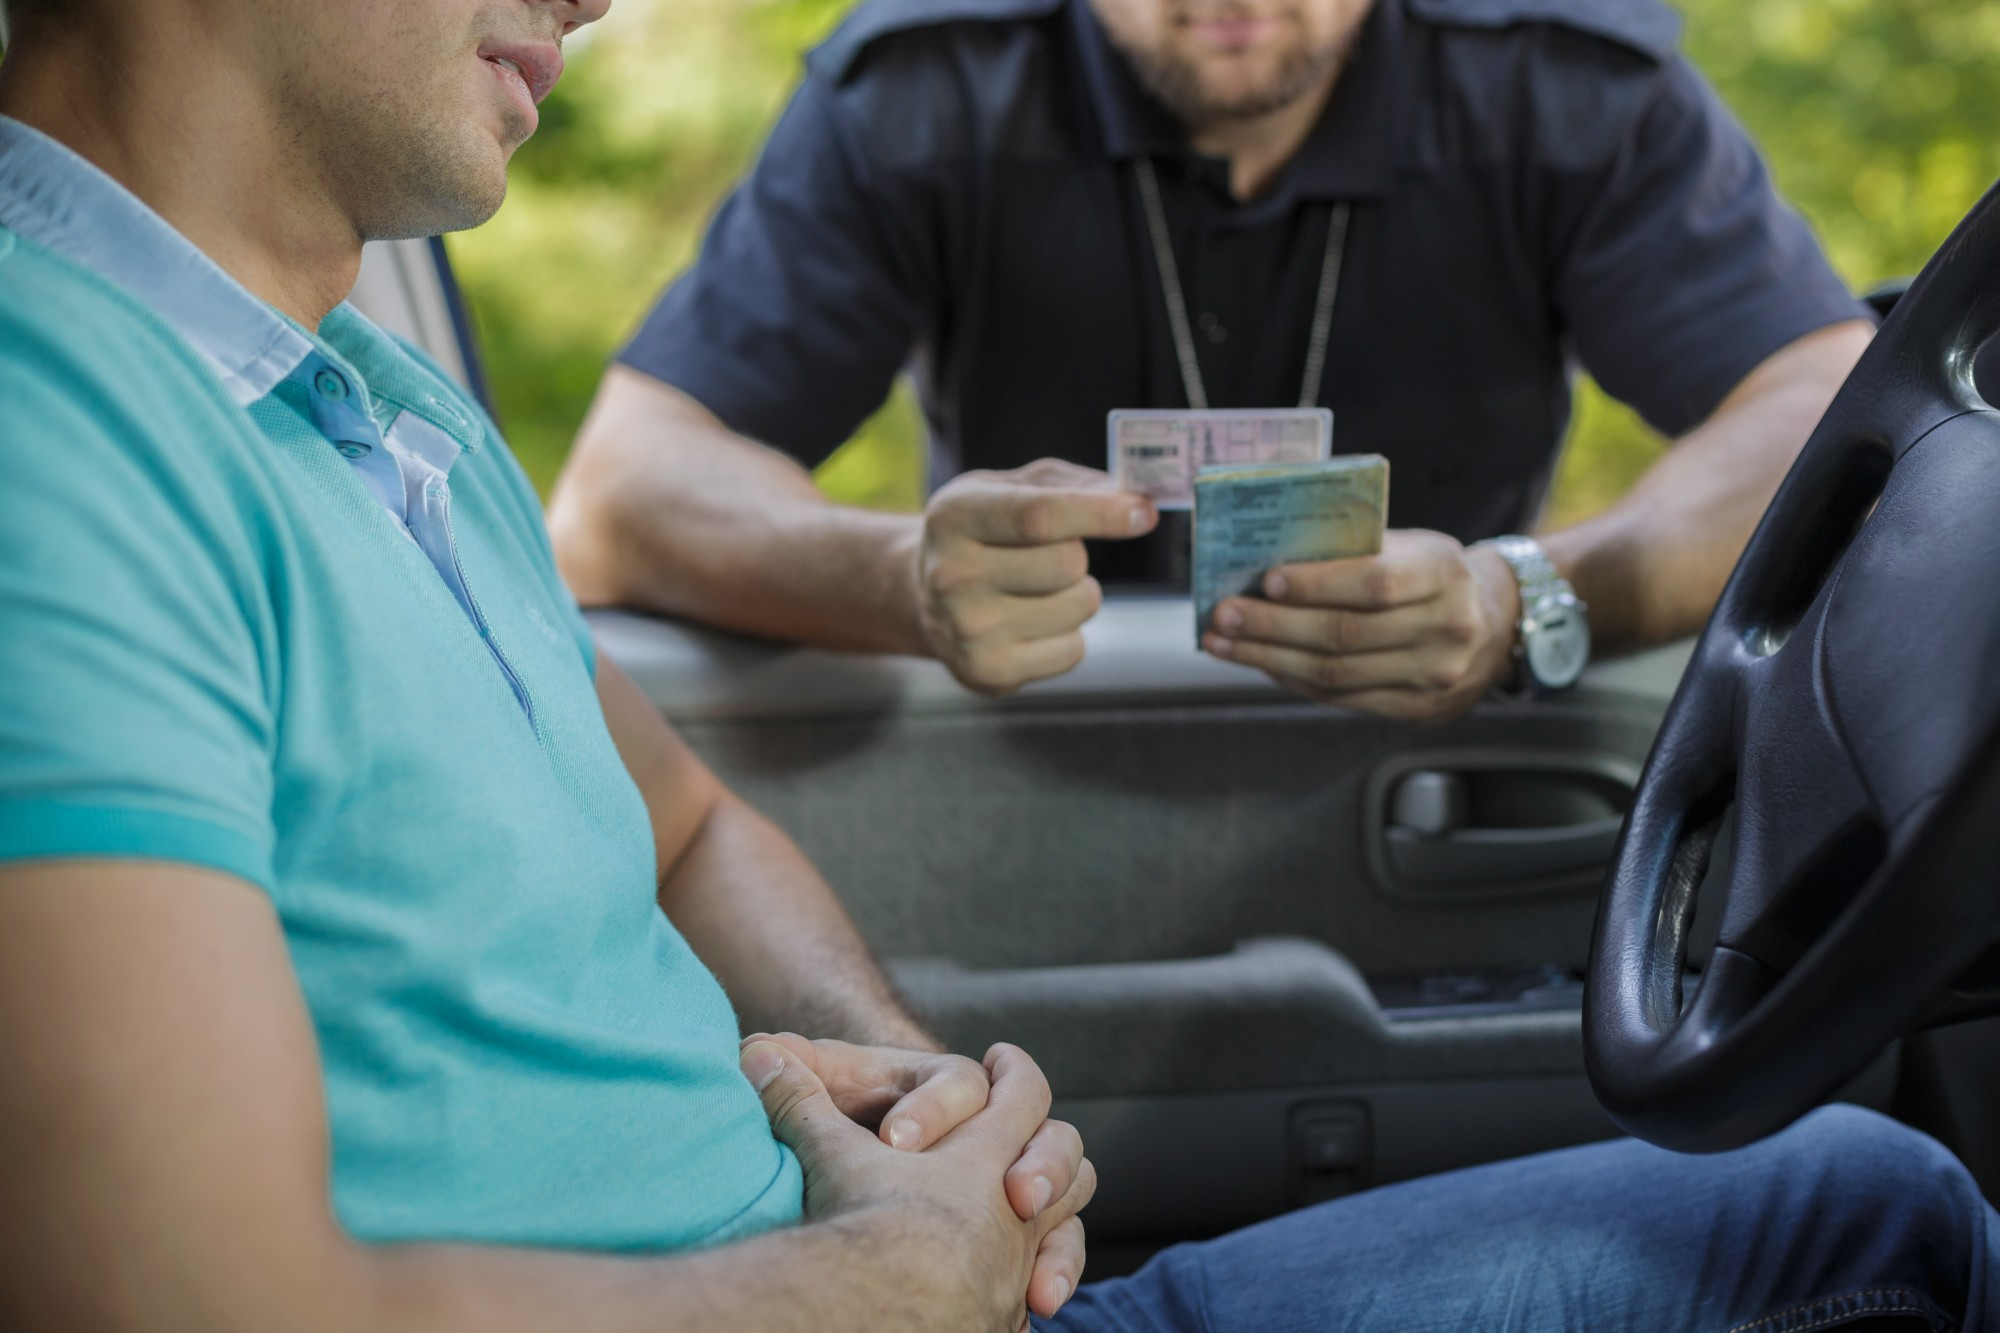 How to Get Your Driver's License Back After a DUI in Texas